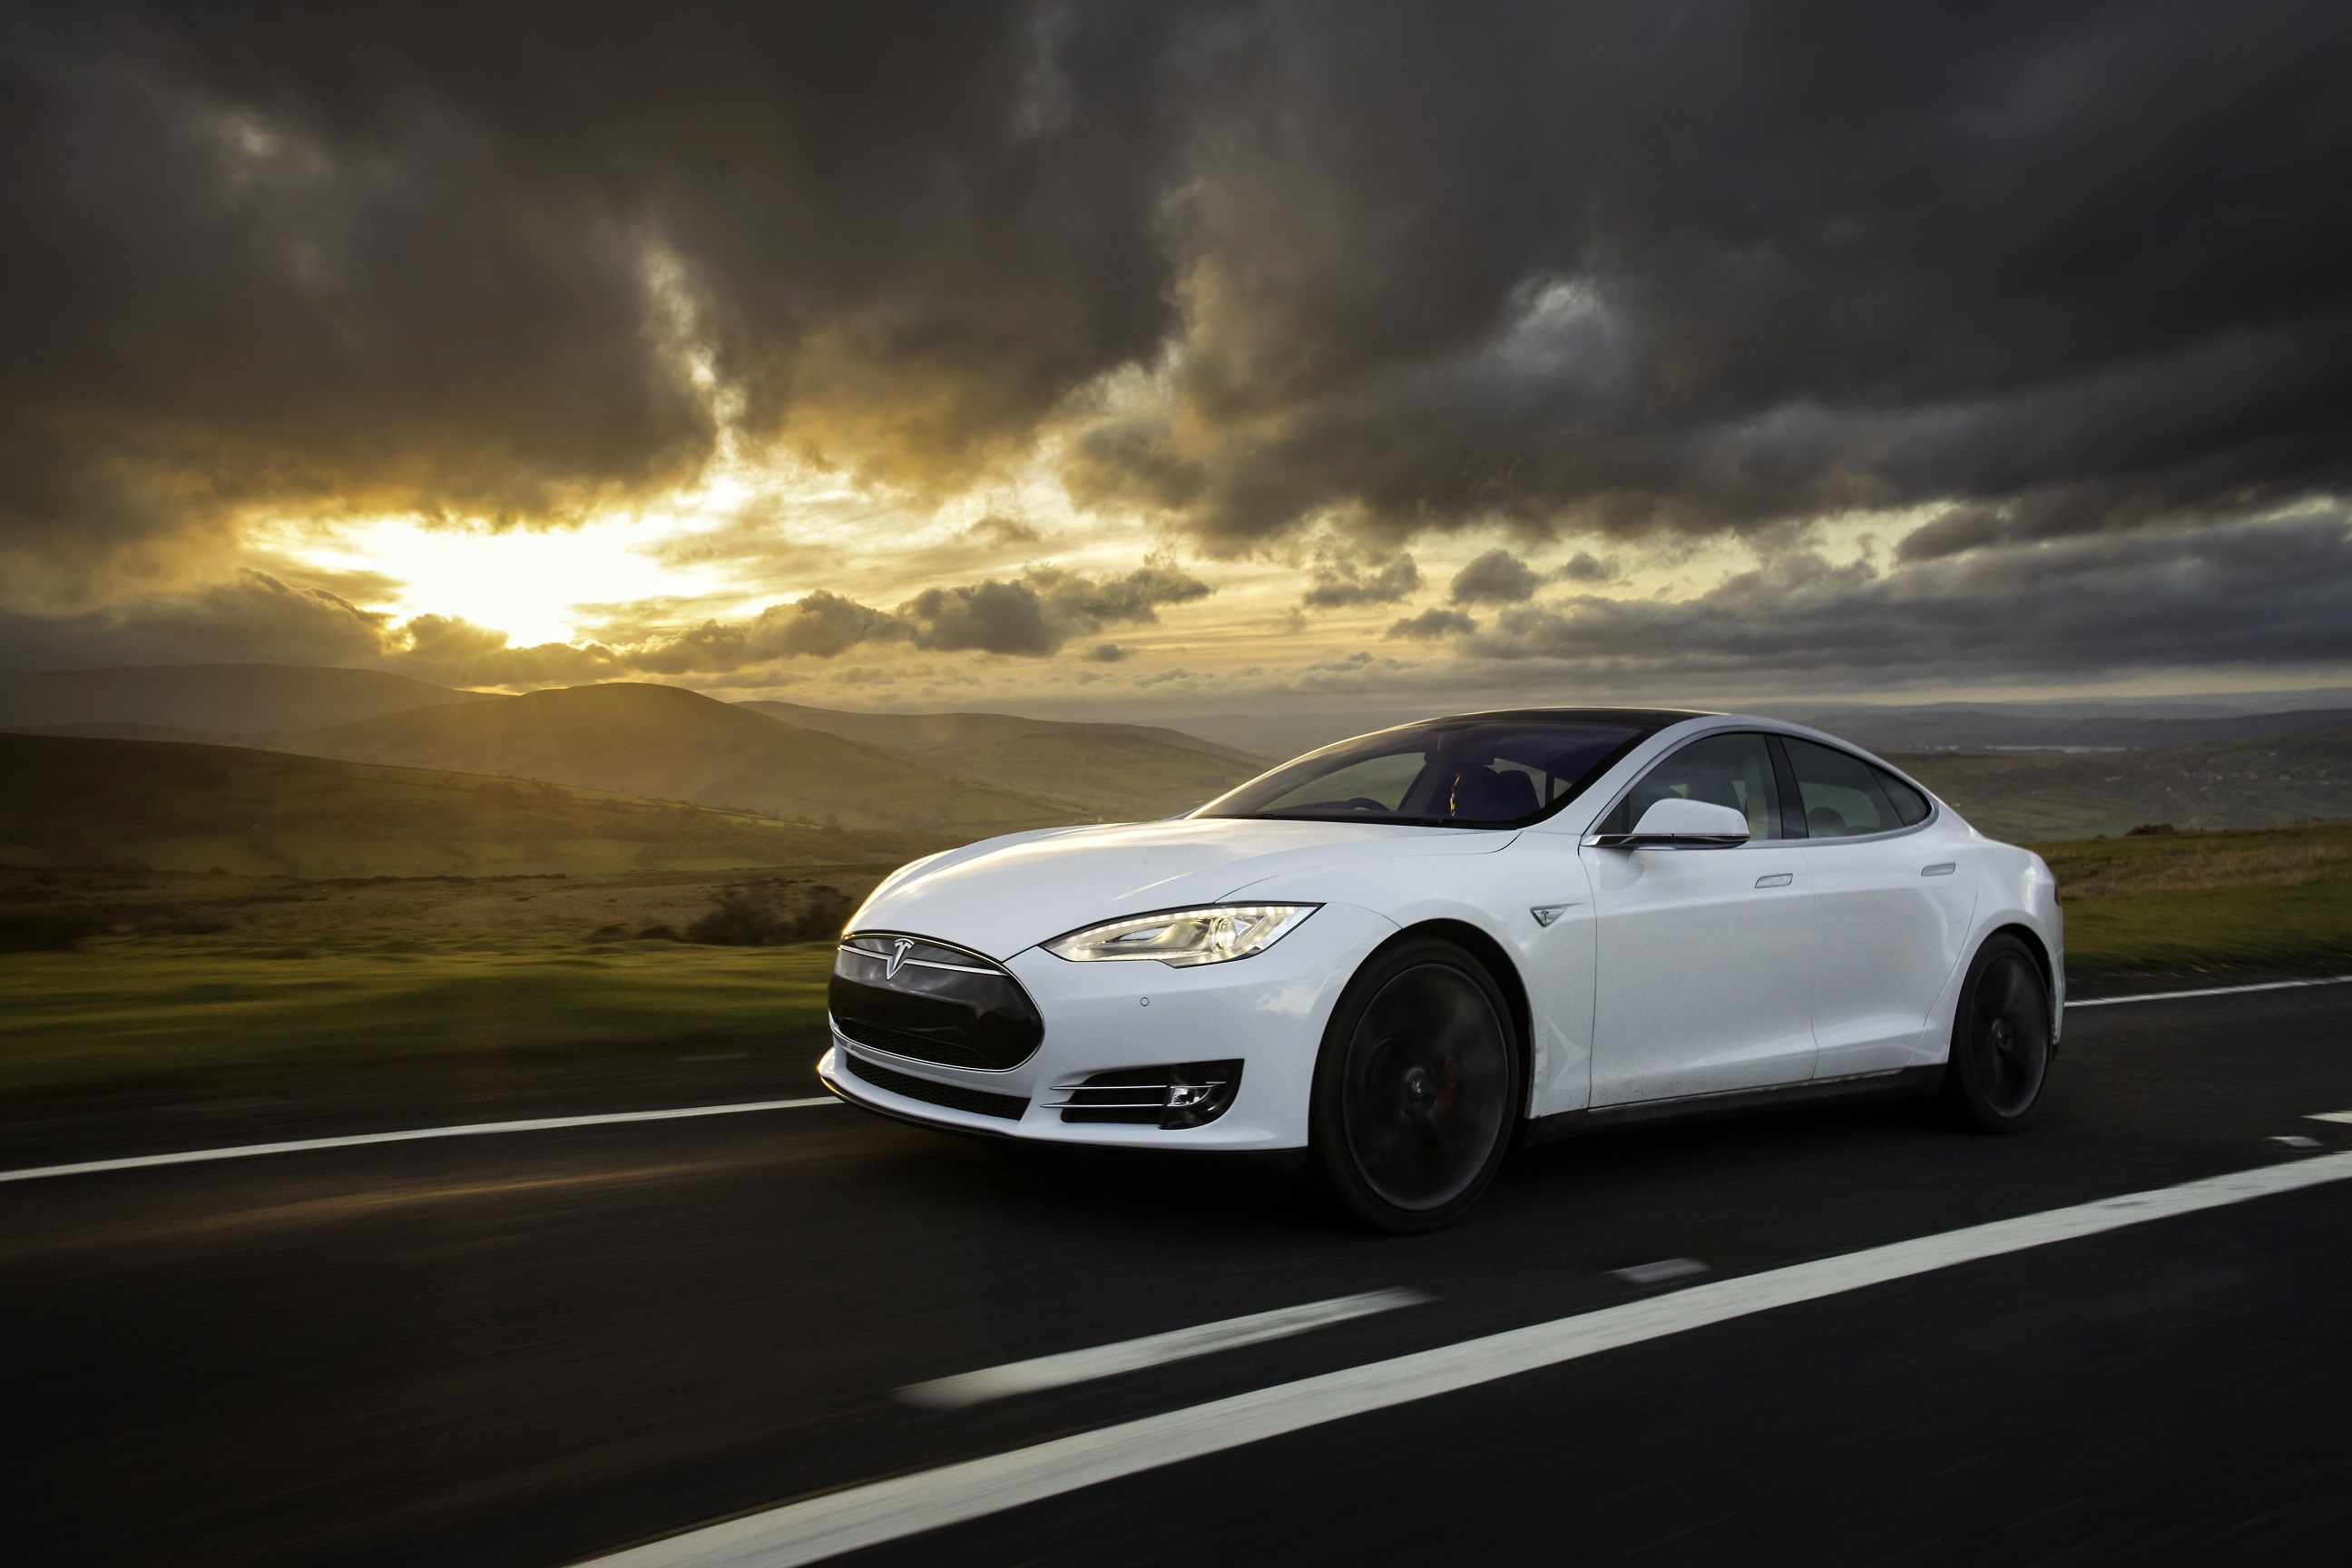 Tesla is one of the champions of autonomously guided cars